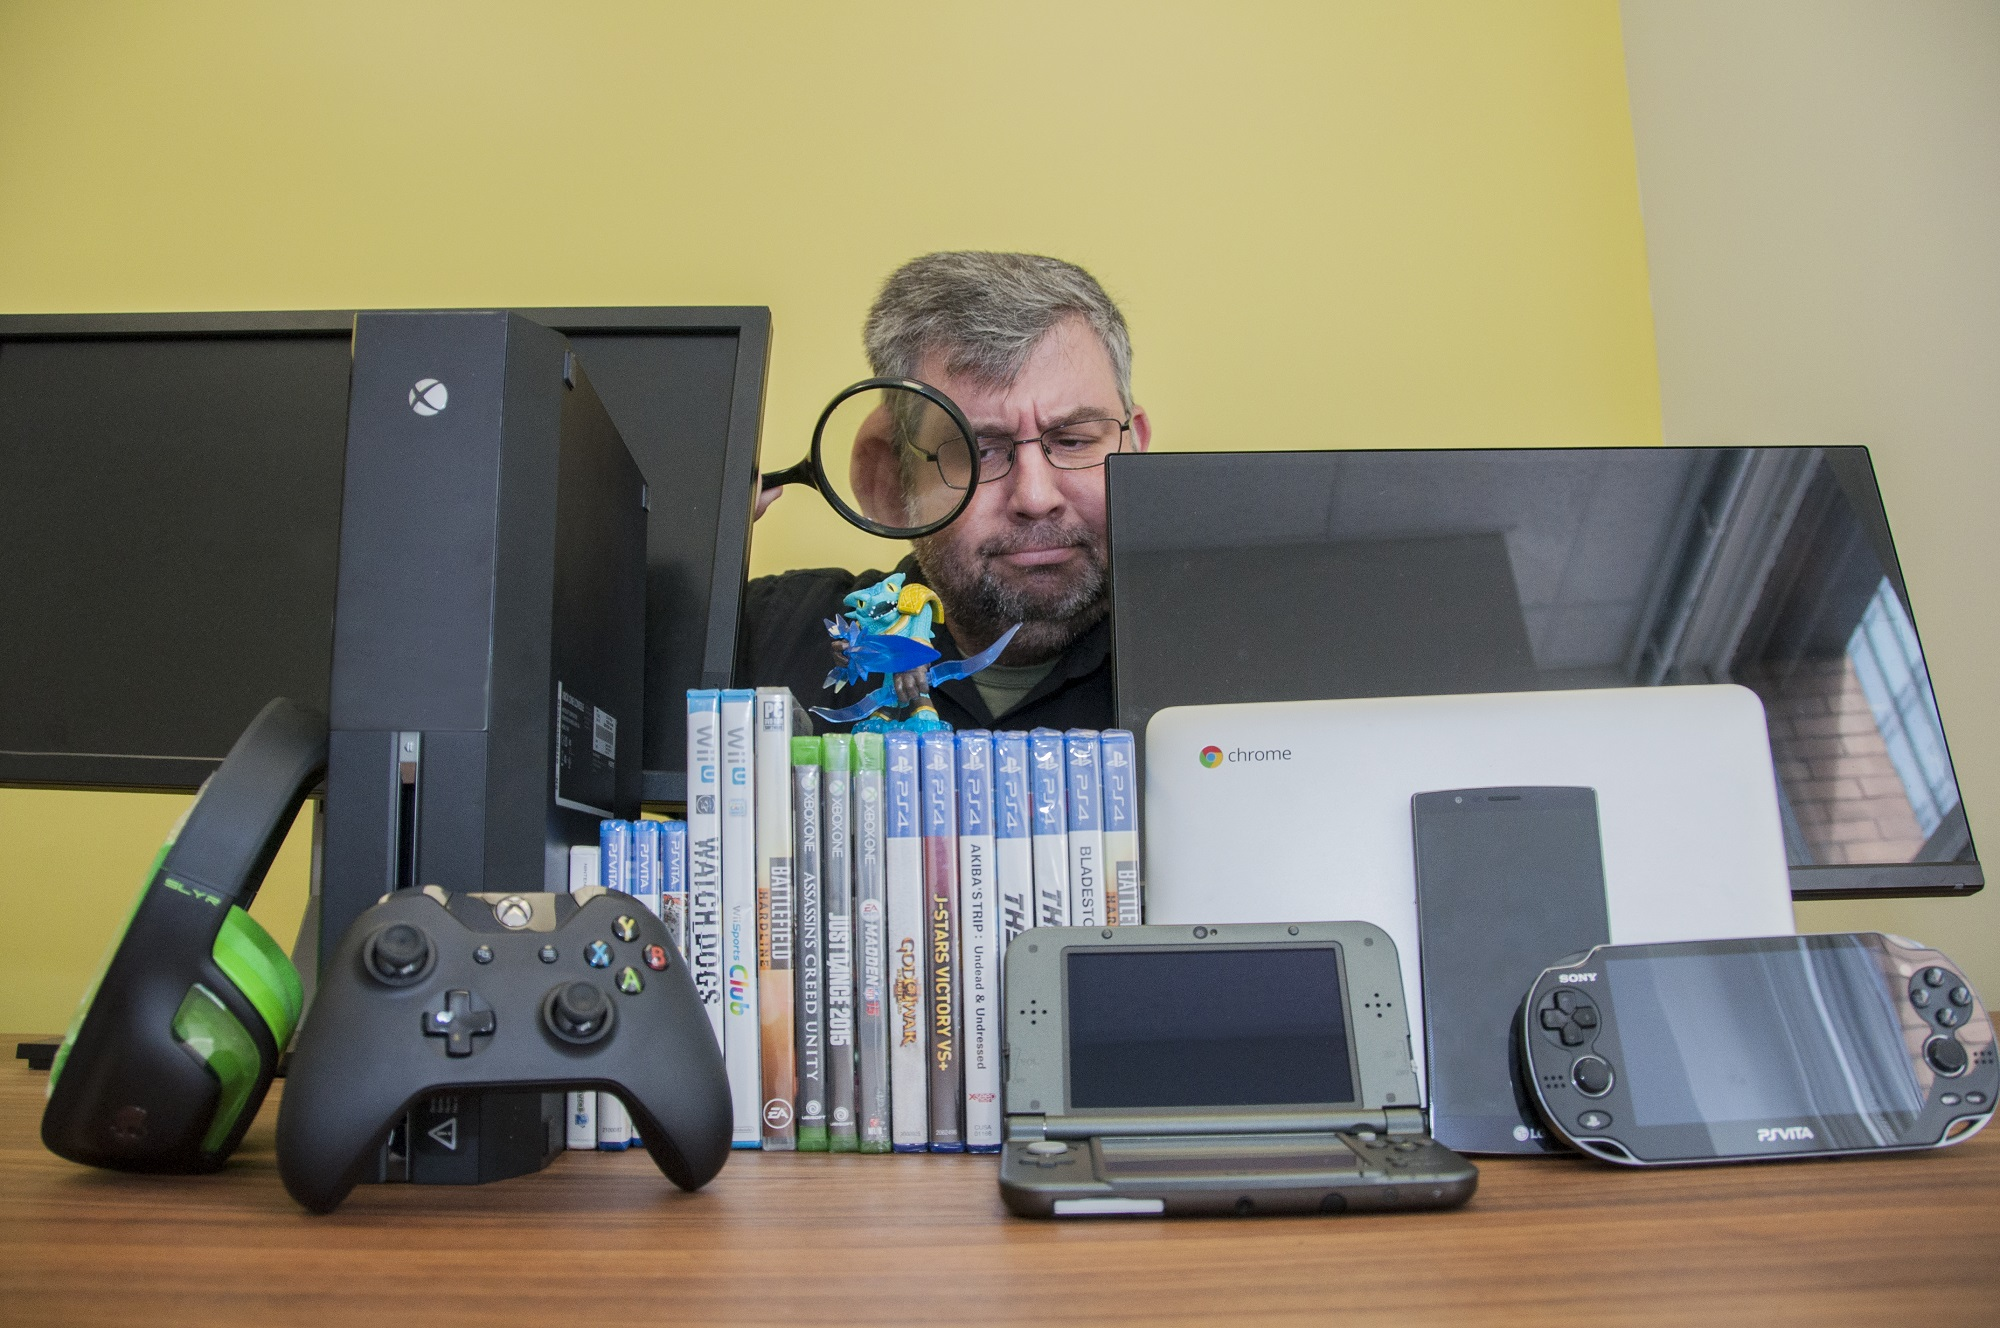 video game and gadget essay (such as a character in a video game), from your offline (real) self you have often used your gadget secretly late into the night to shop or visit websites with.